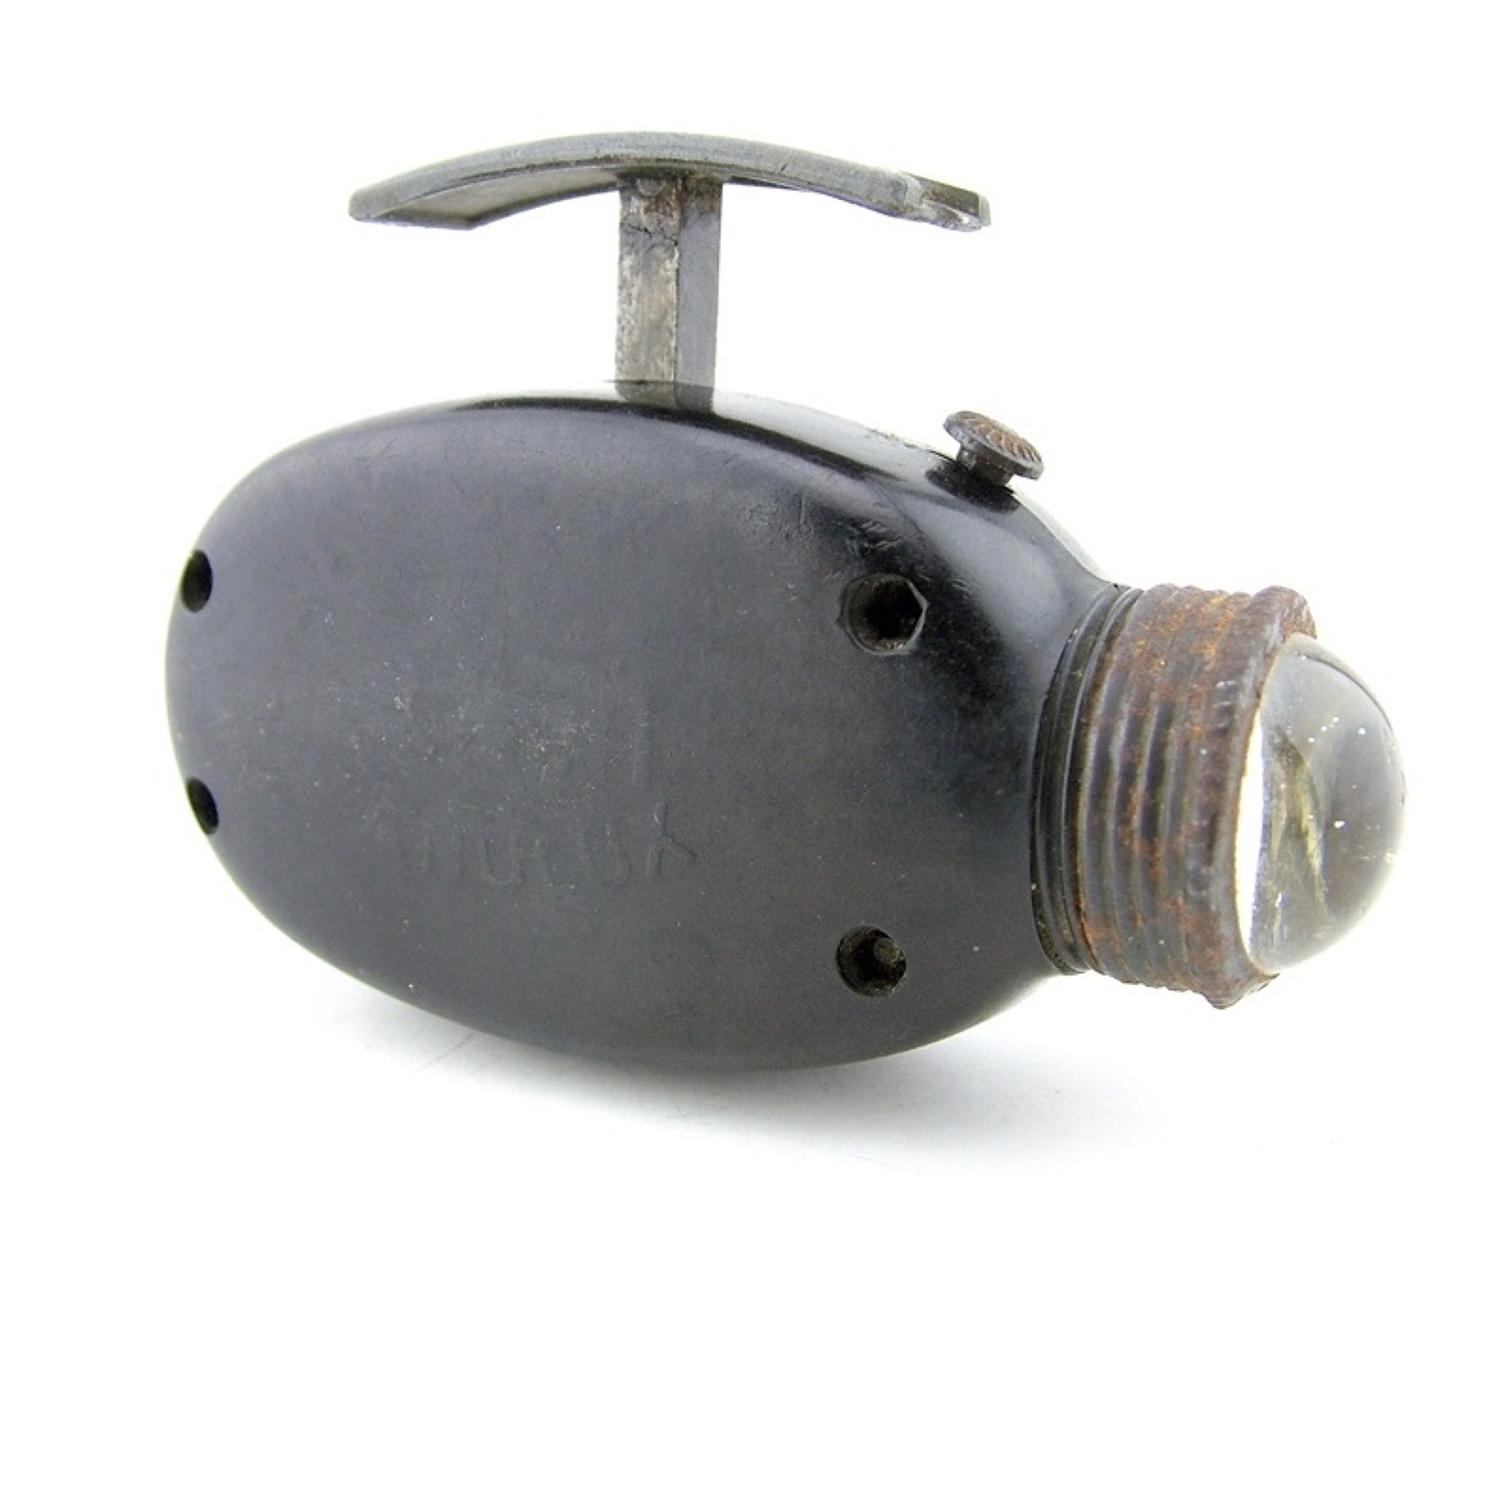 Luftwaffe issued hand operated torch